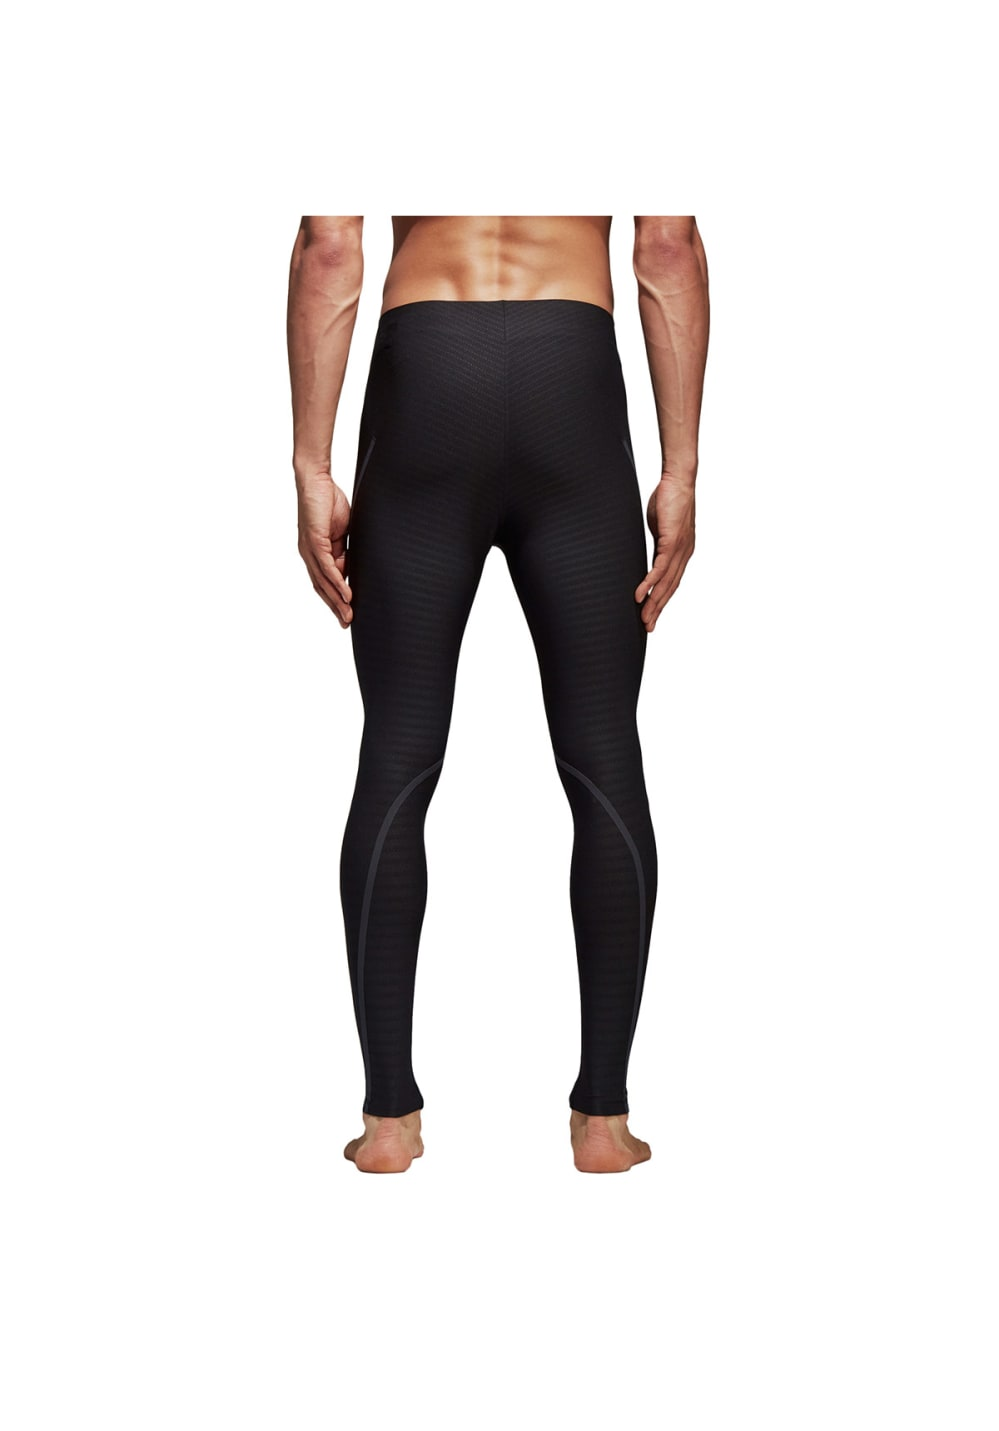 905db11a9cd86 adidas Alphaskin 360 Lange Tight - Fitness trousers for Men - Black ...